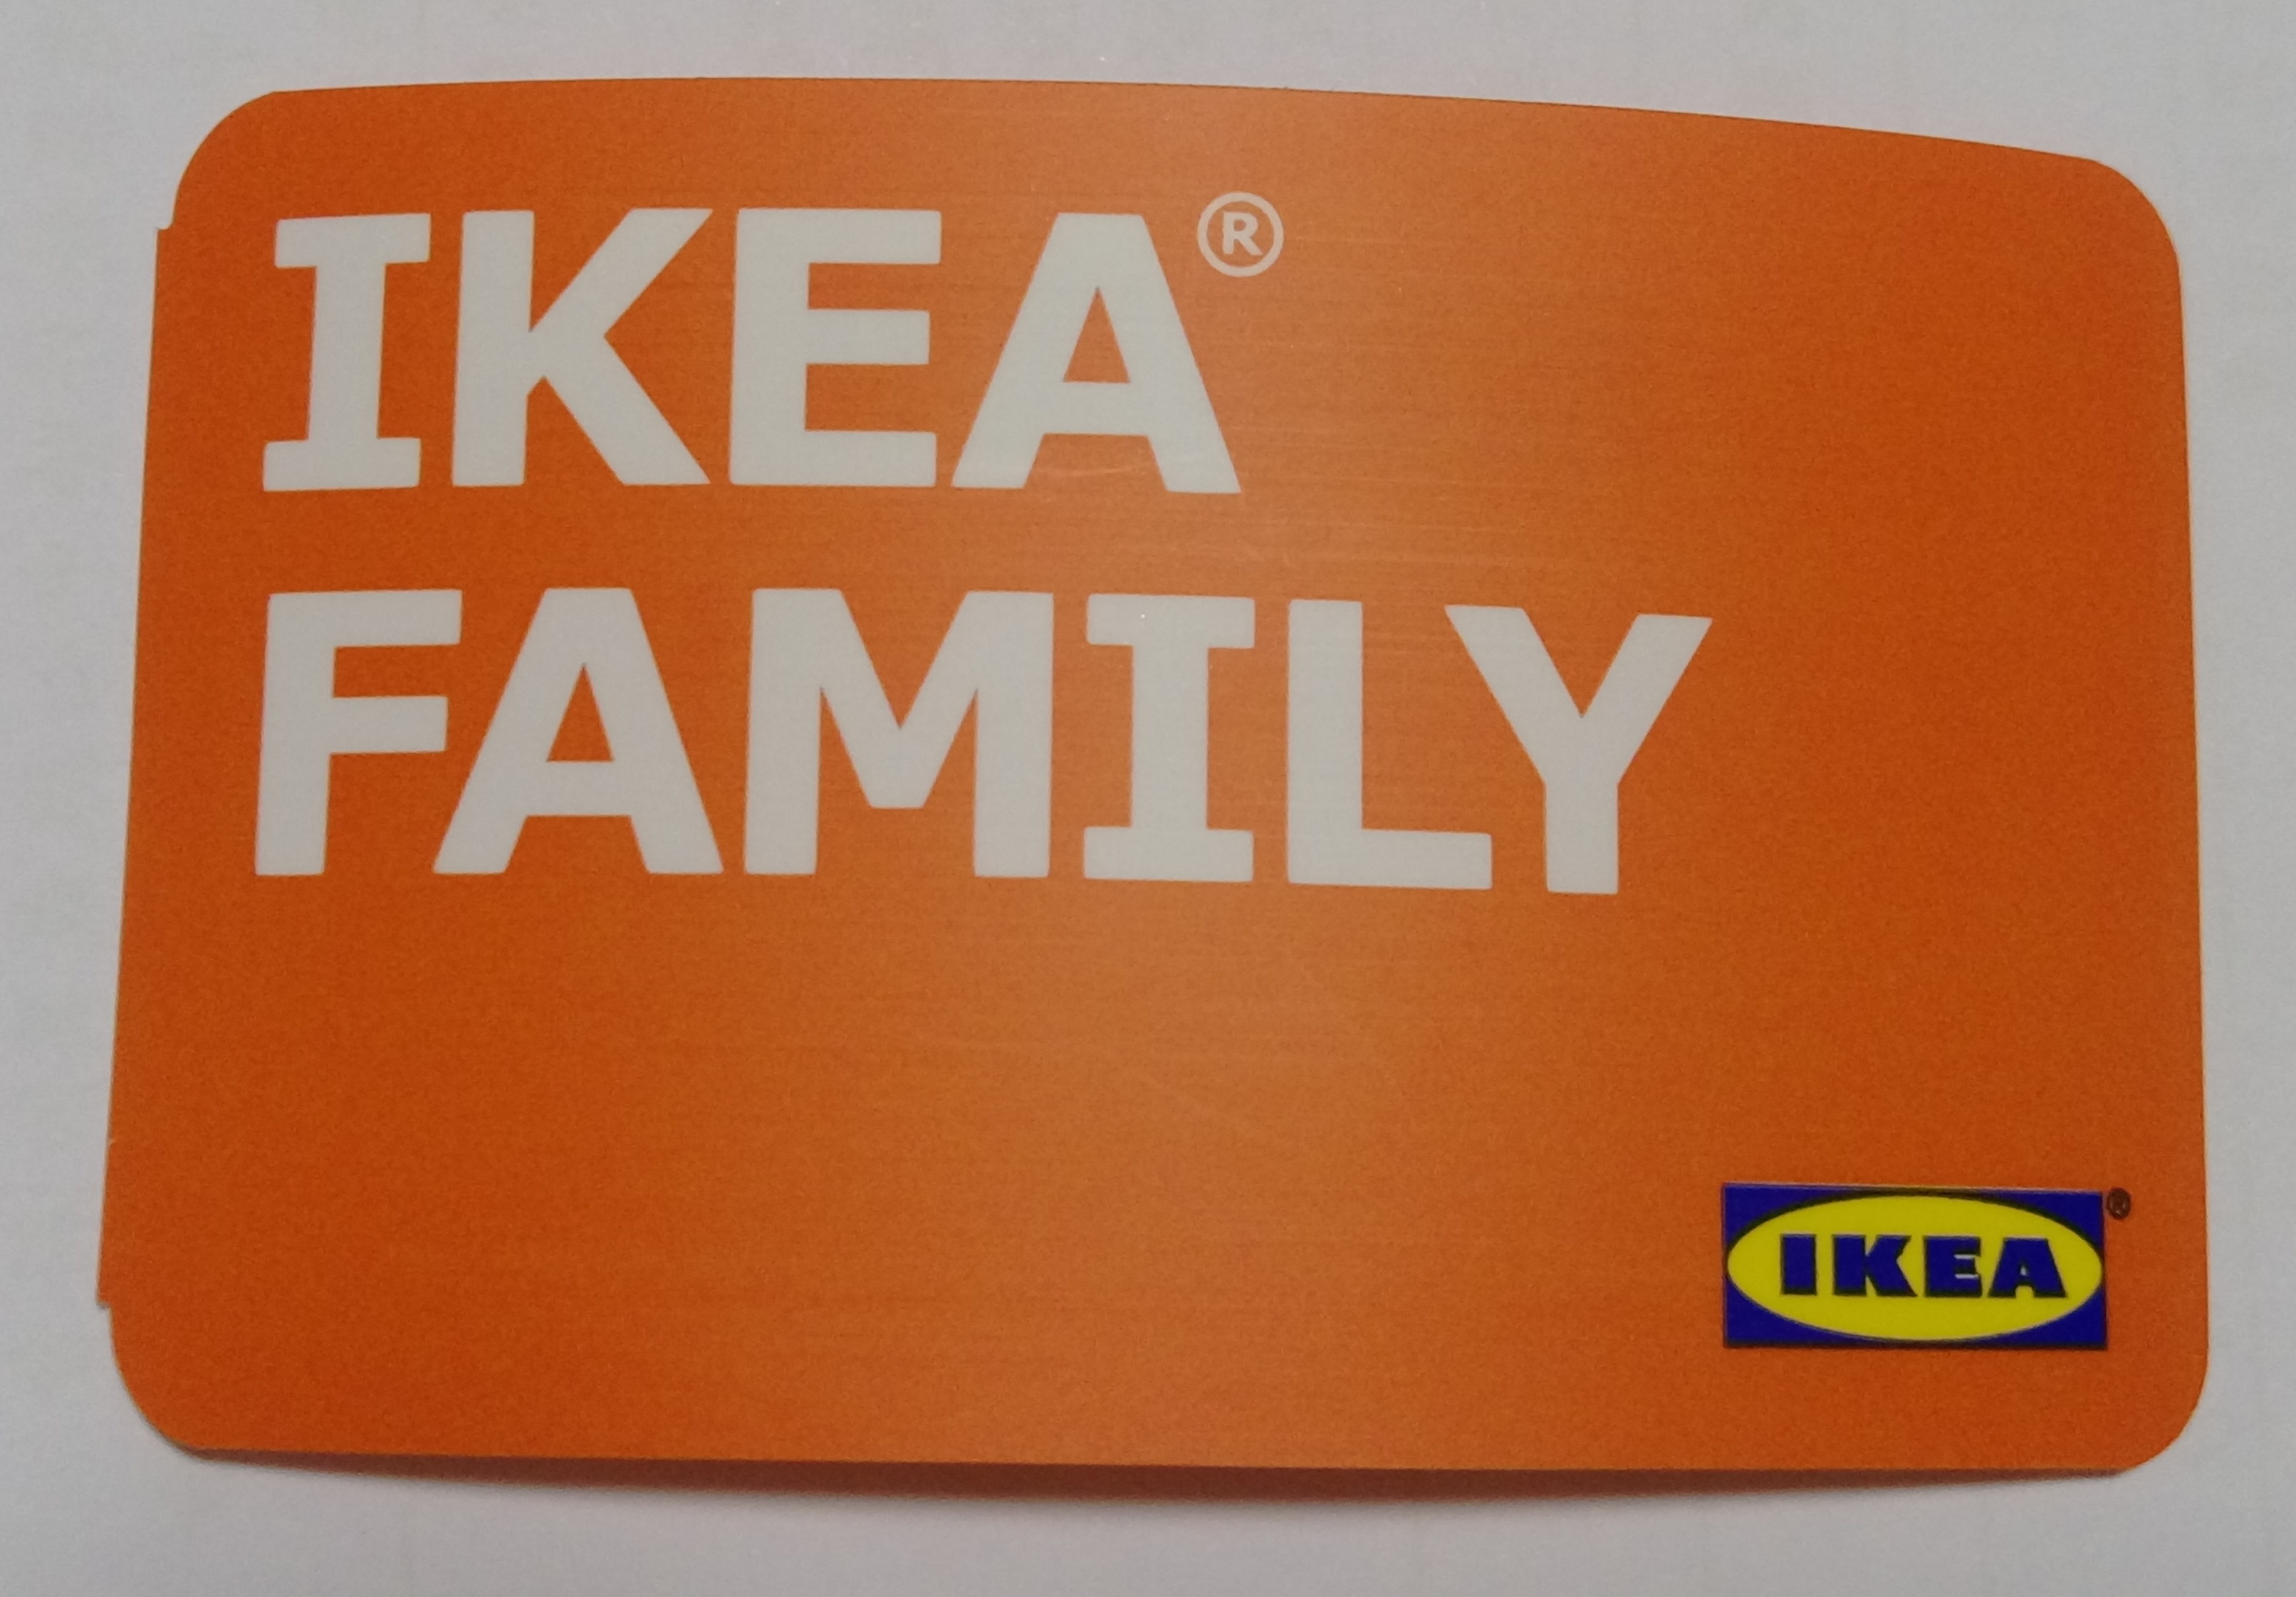 File:A Family member card of IKEA Taiwan.jpg - Wikimedia Commons on modell's family, saudi arabia family, walmart family, disney family, unhappy family, muslim family, gucci family, ideal family, facebook family, middle eastern family, mcdonald's family, google family, sweden family, bj's wholesale family, camping with your family, macy's family, shopping family, at&t family, historic family, caucasian family,